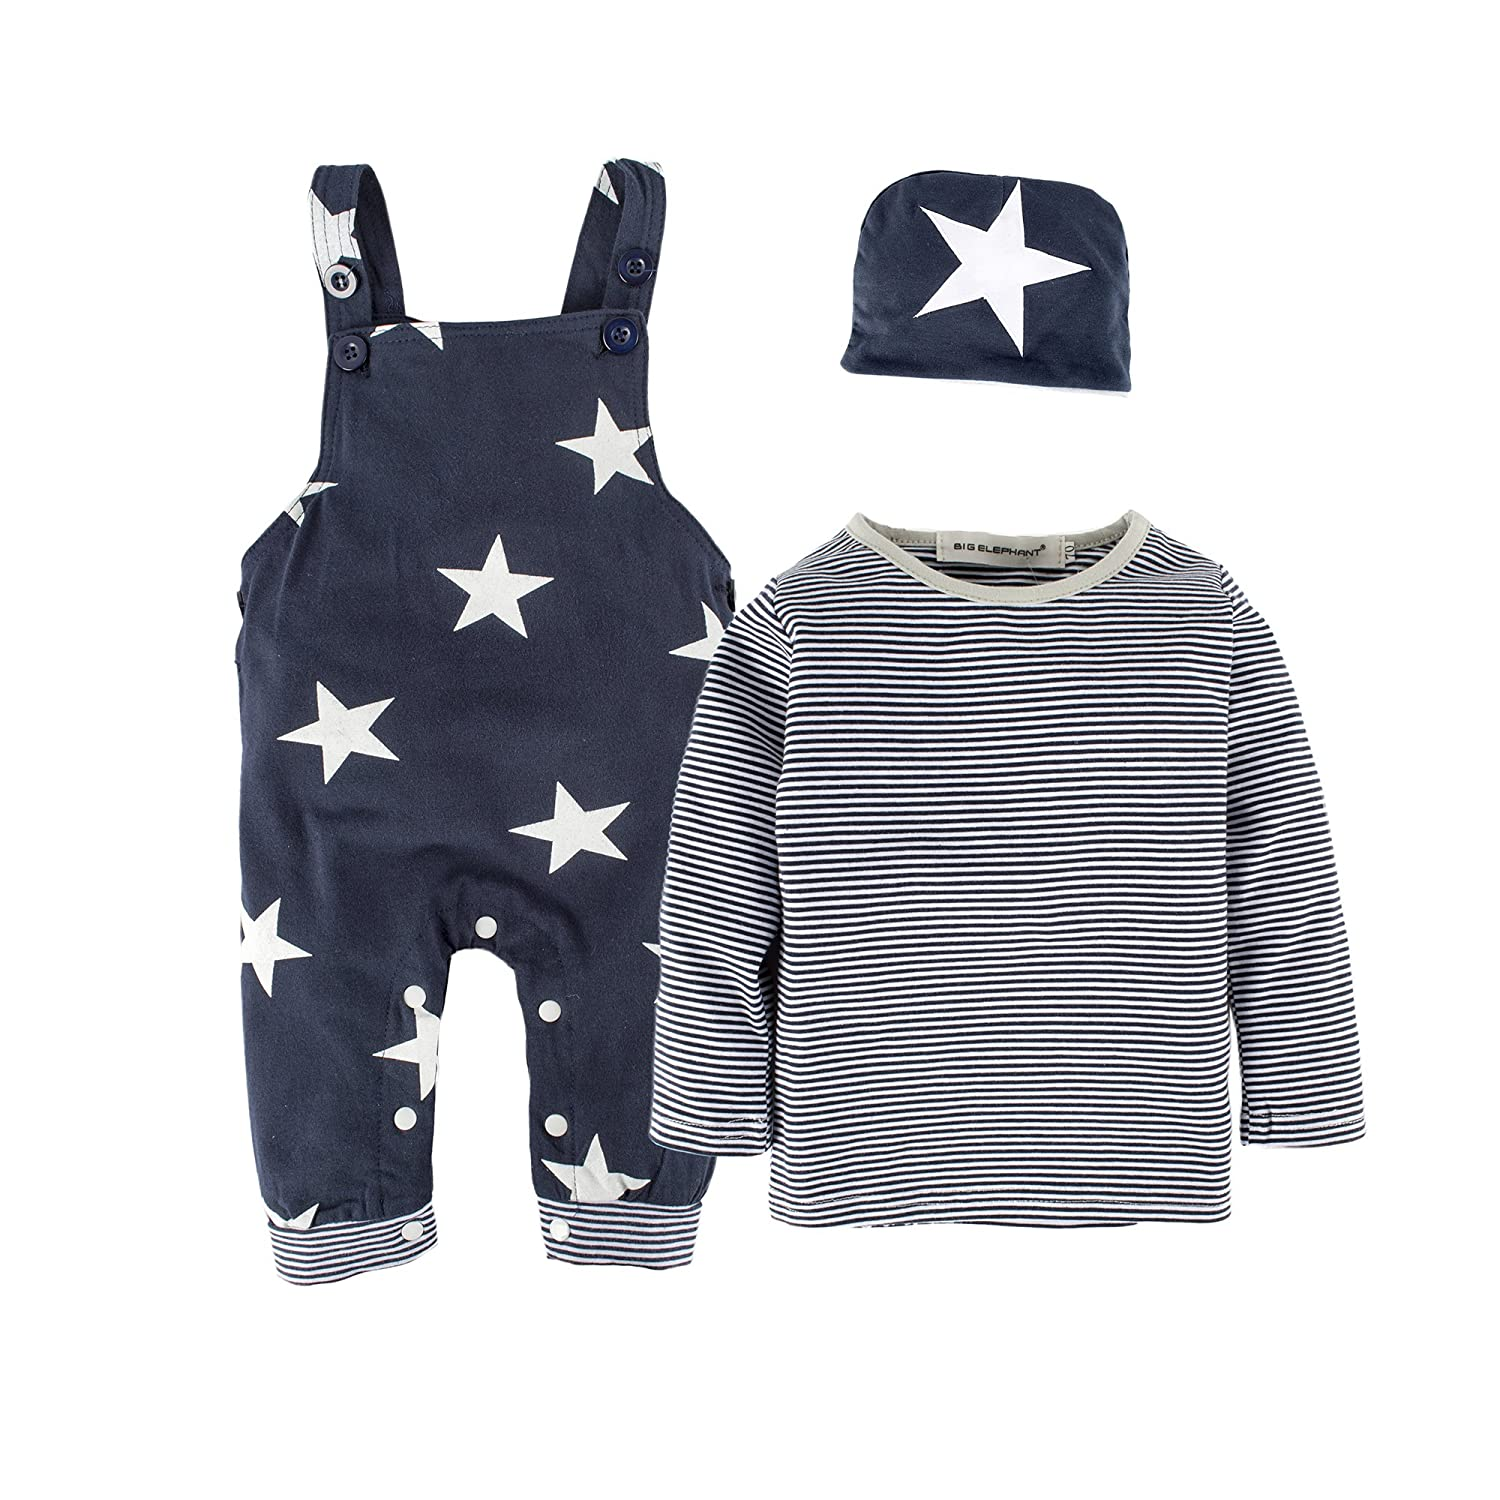 BIG ELEPHANT 3 Pieces Baby Boys'Long Sleeve Shirt Overalls Set with Hat H92C